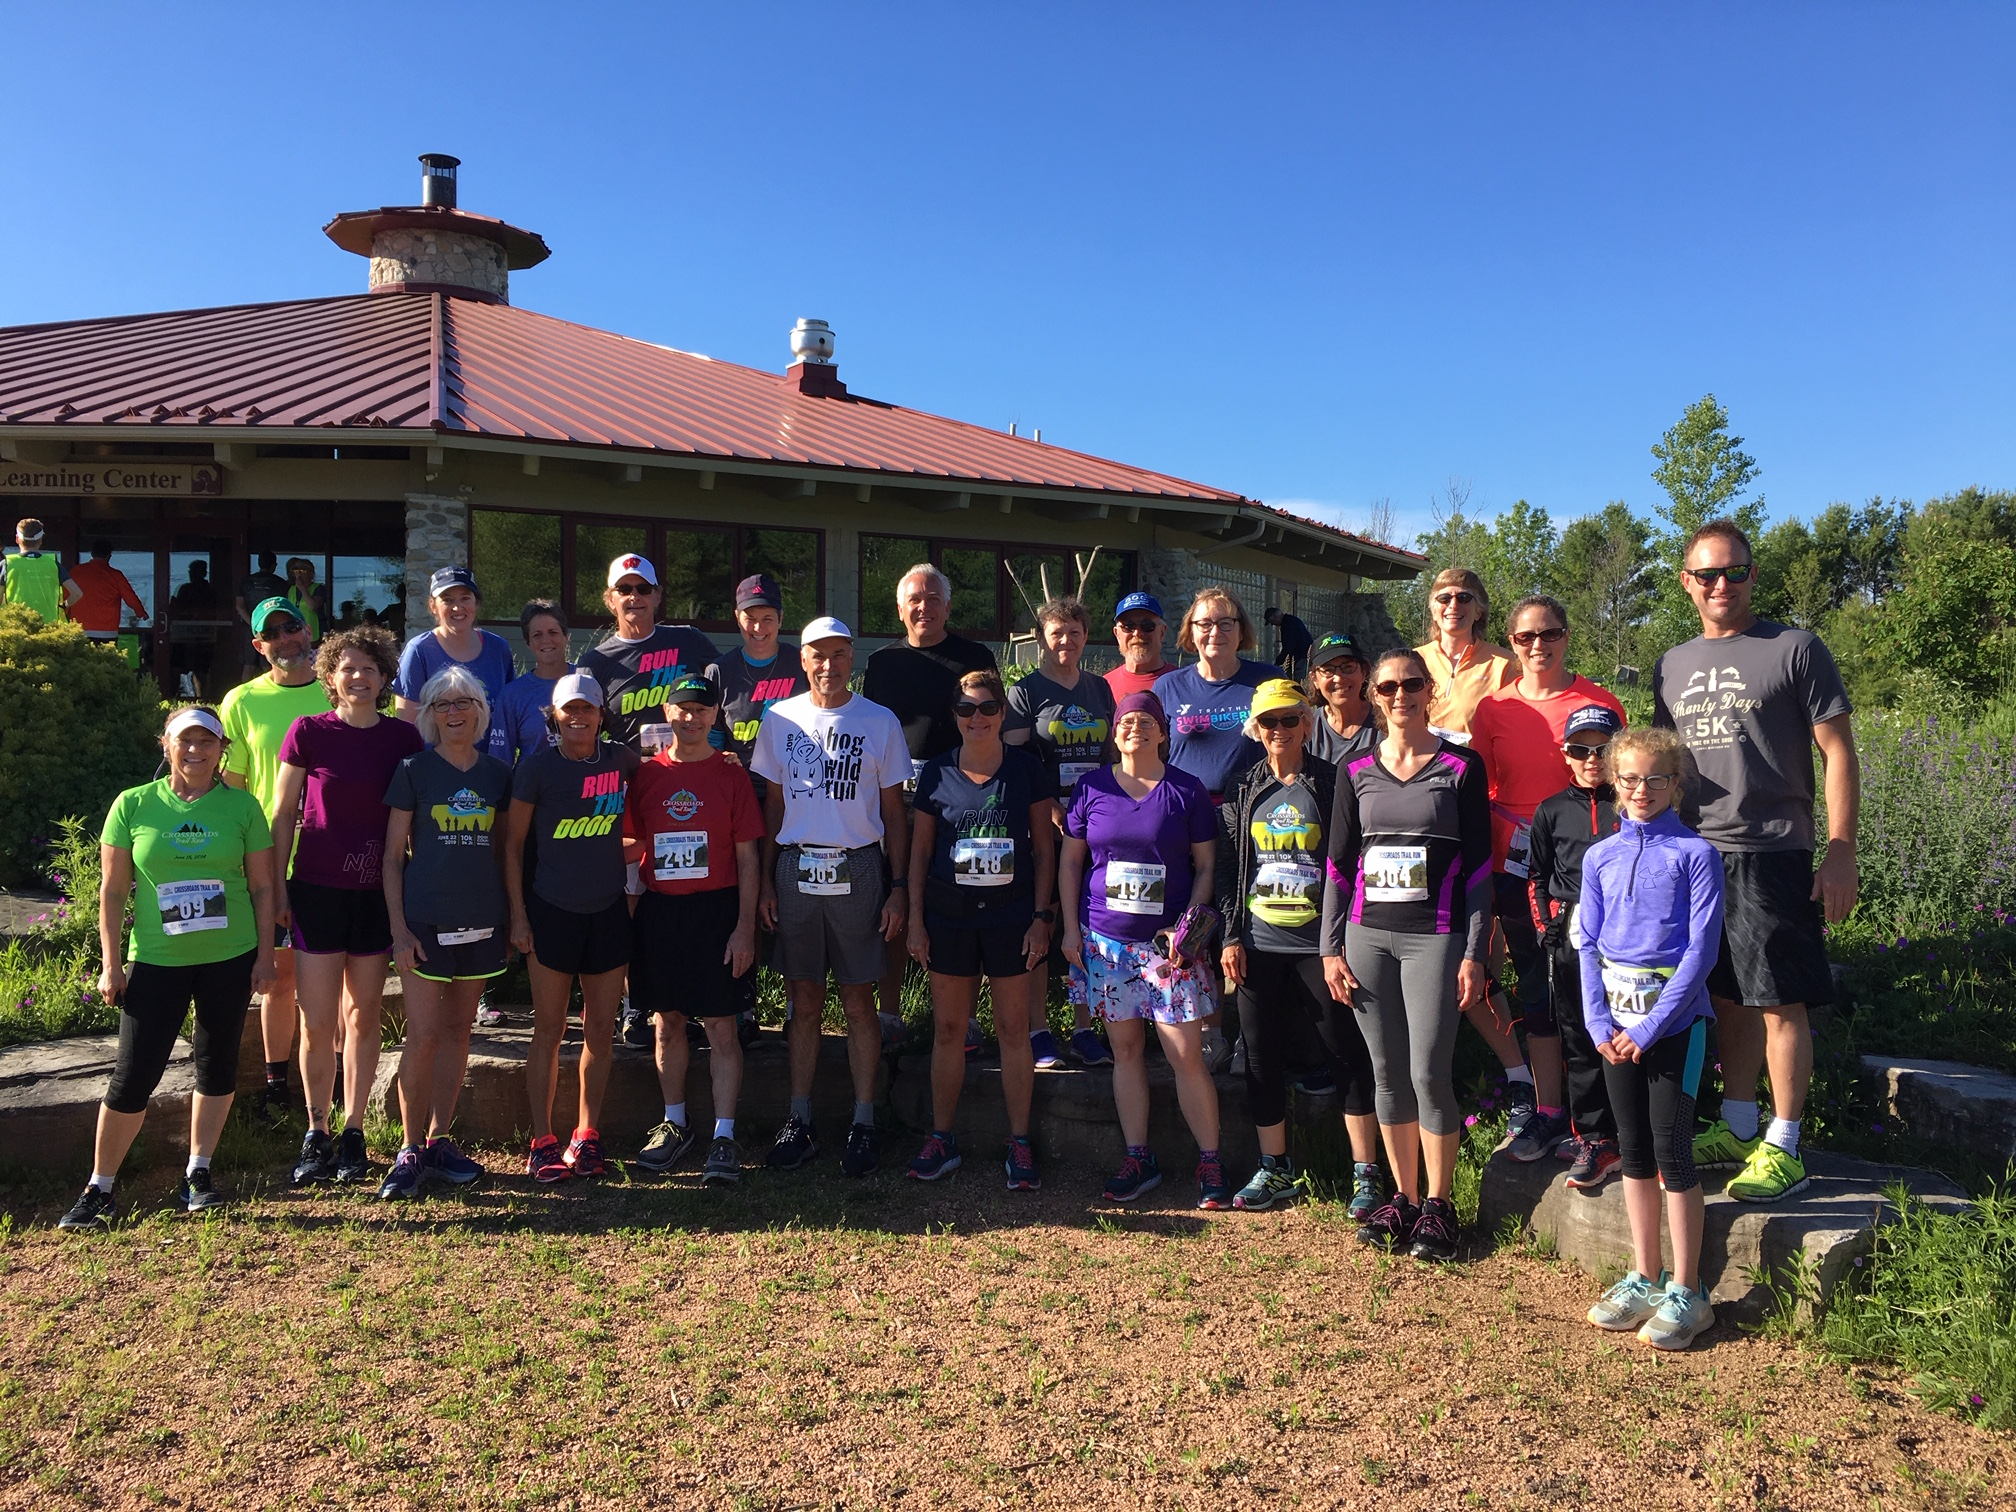 It was a gorgeous day for the 2019 Crossroads Trail Run. A total of 51 runners scored RTD points in the 10K, 5K or 2K.